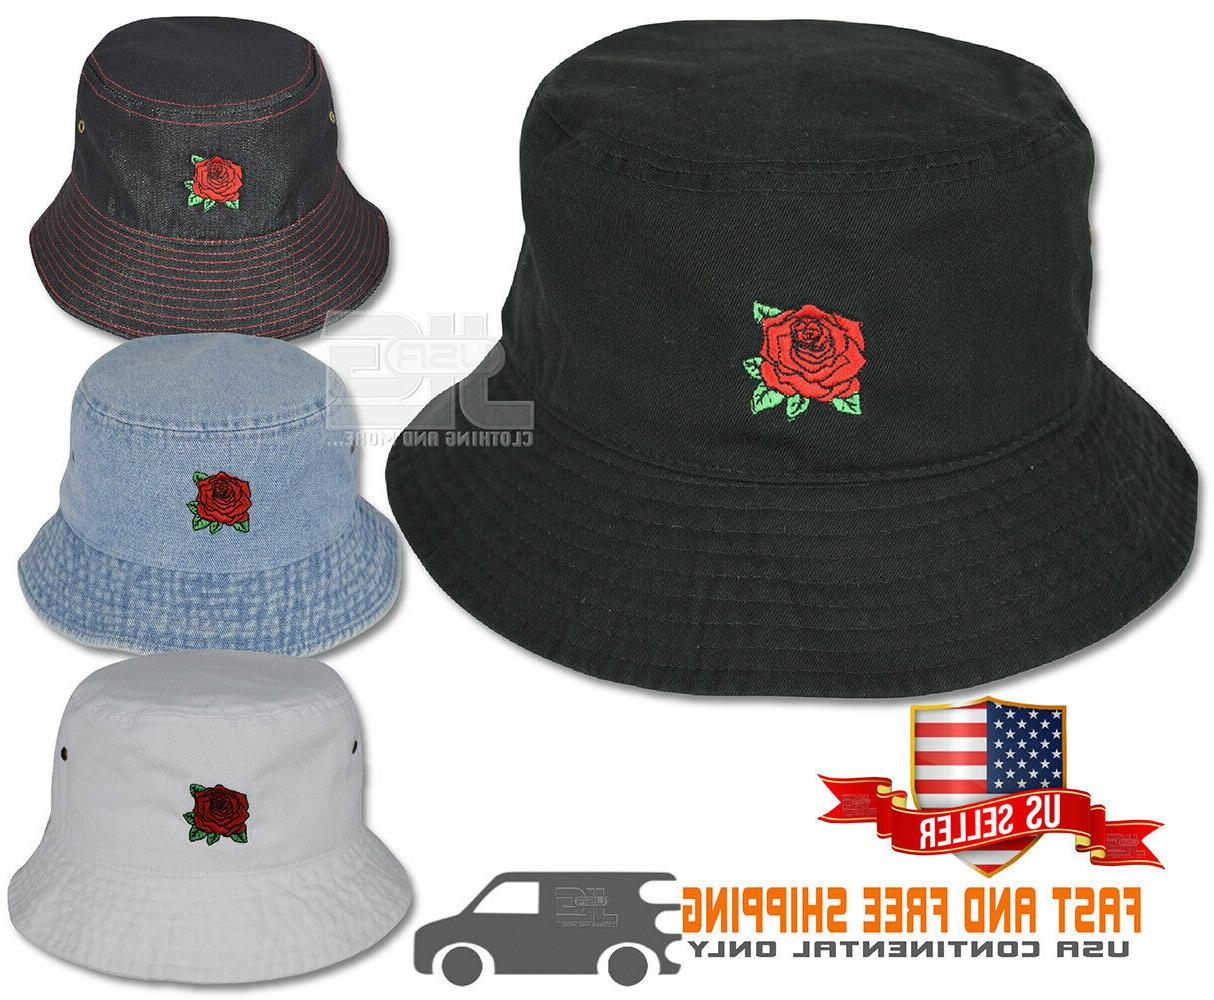 red rose embroidery cotton packable summer travel